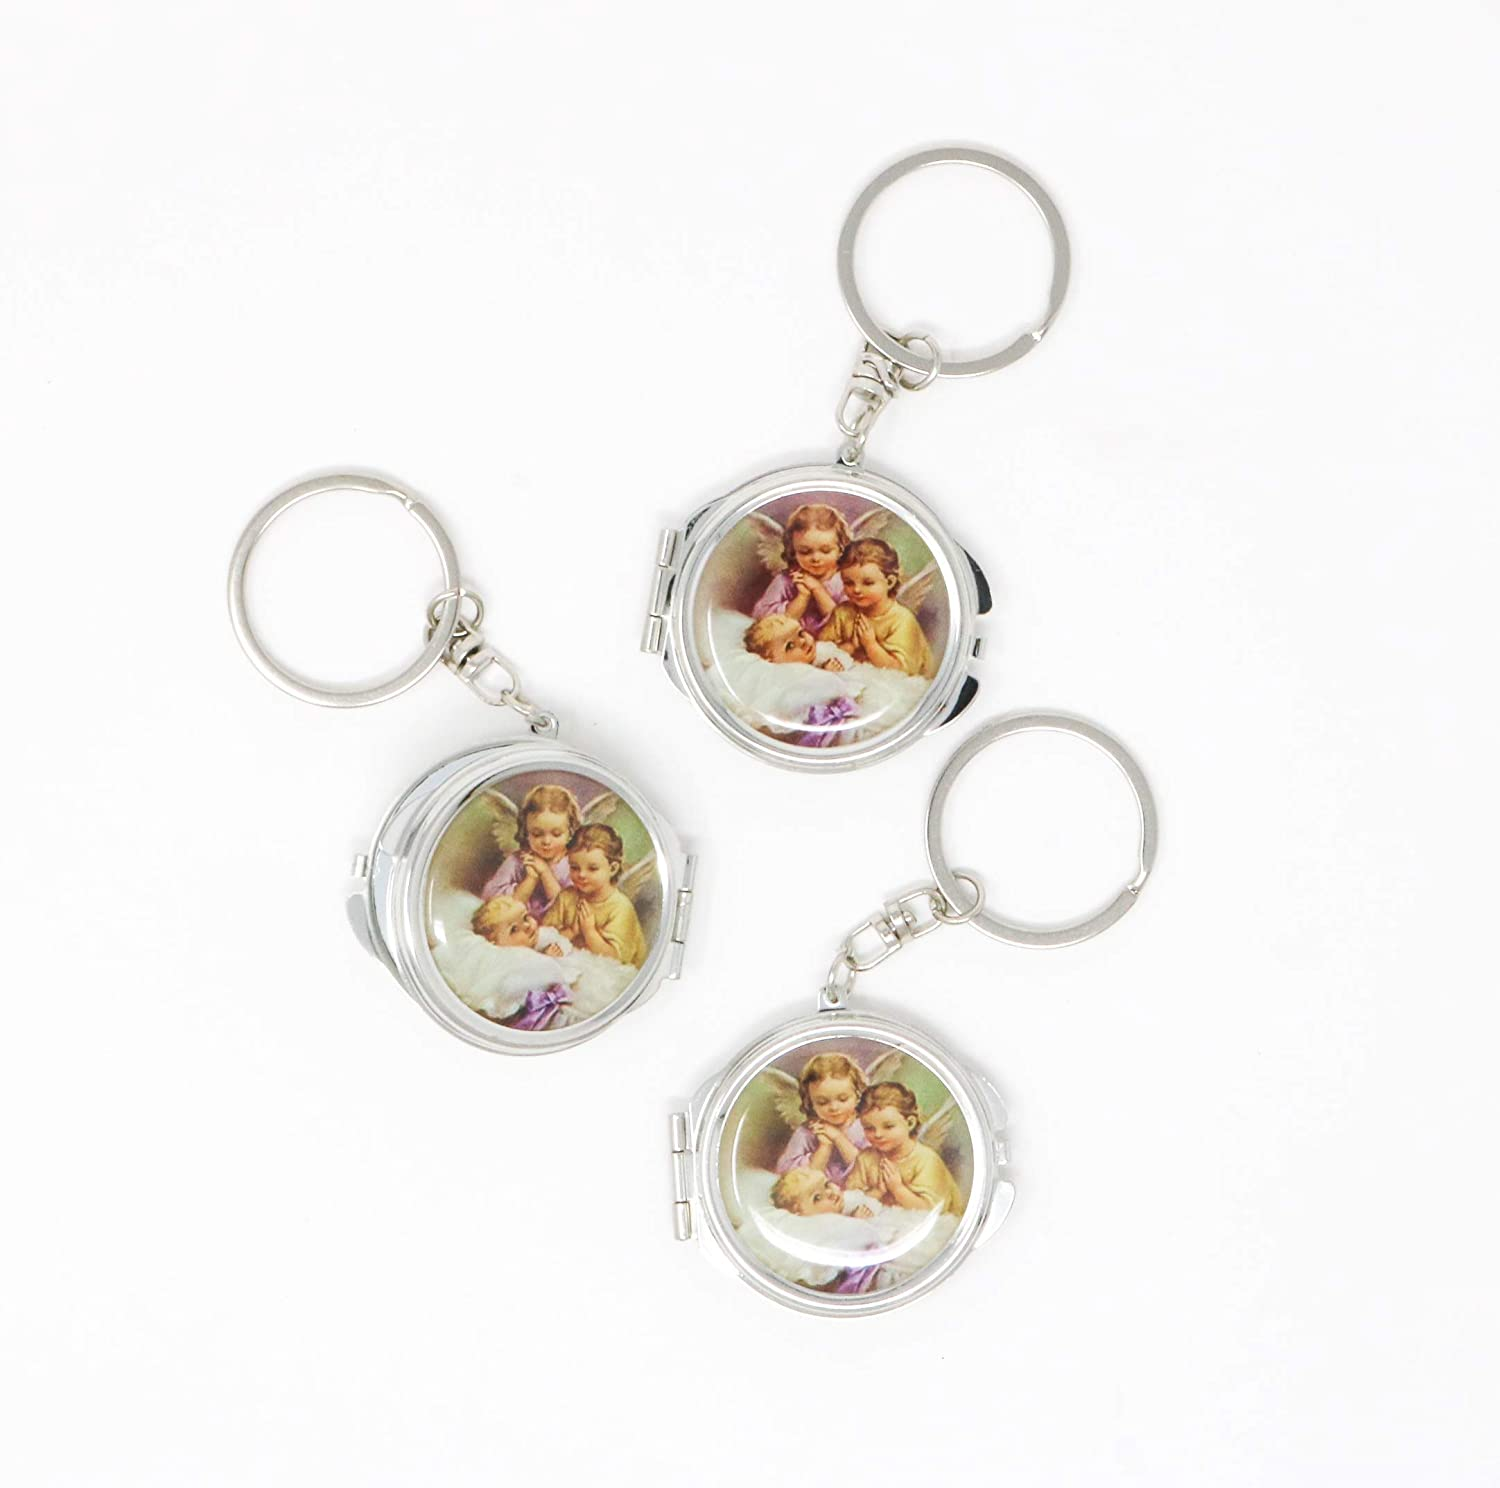 12 Piece New Baptism Mini Compact Mirror Key Chain Party Favor for Boys and Girls - Bautizo...